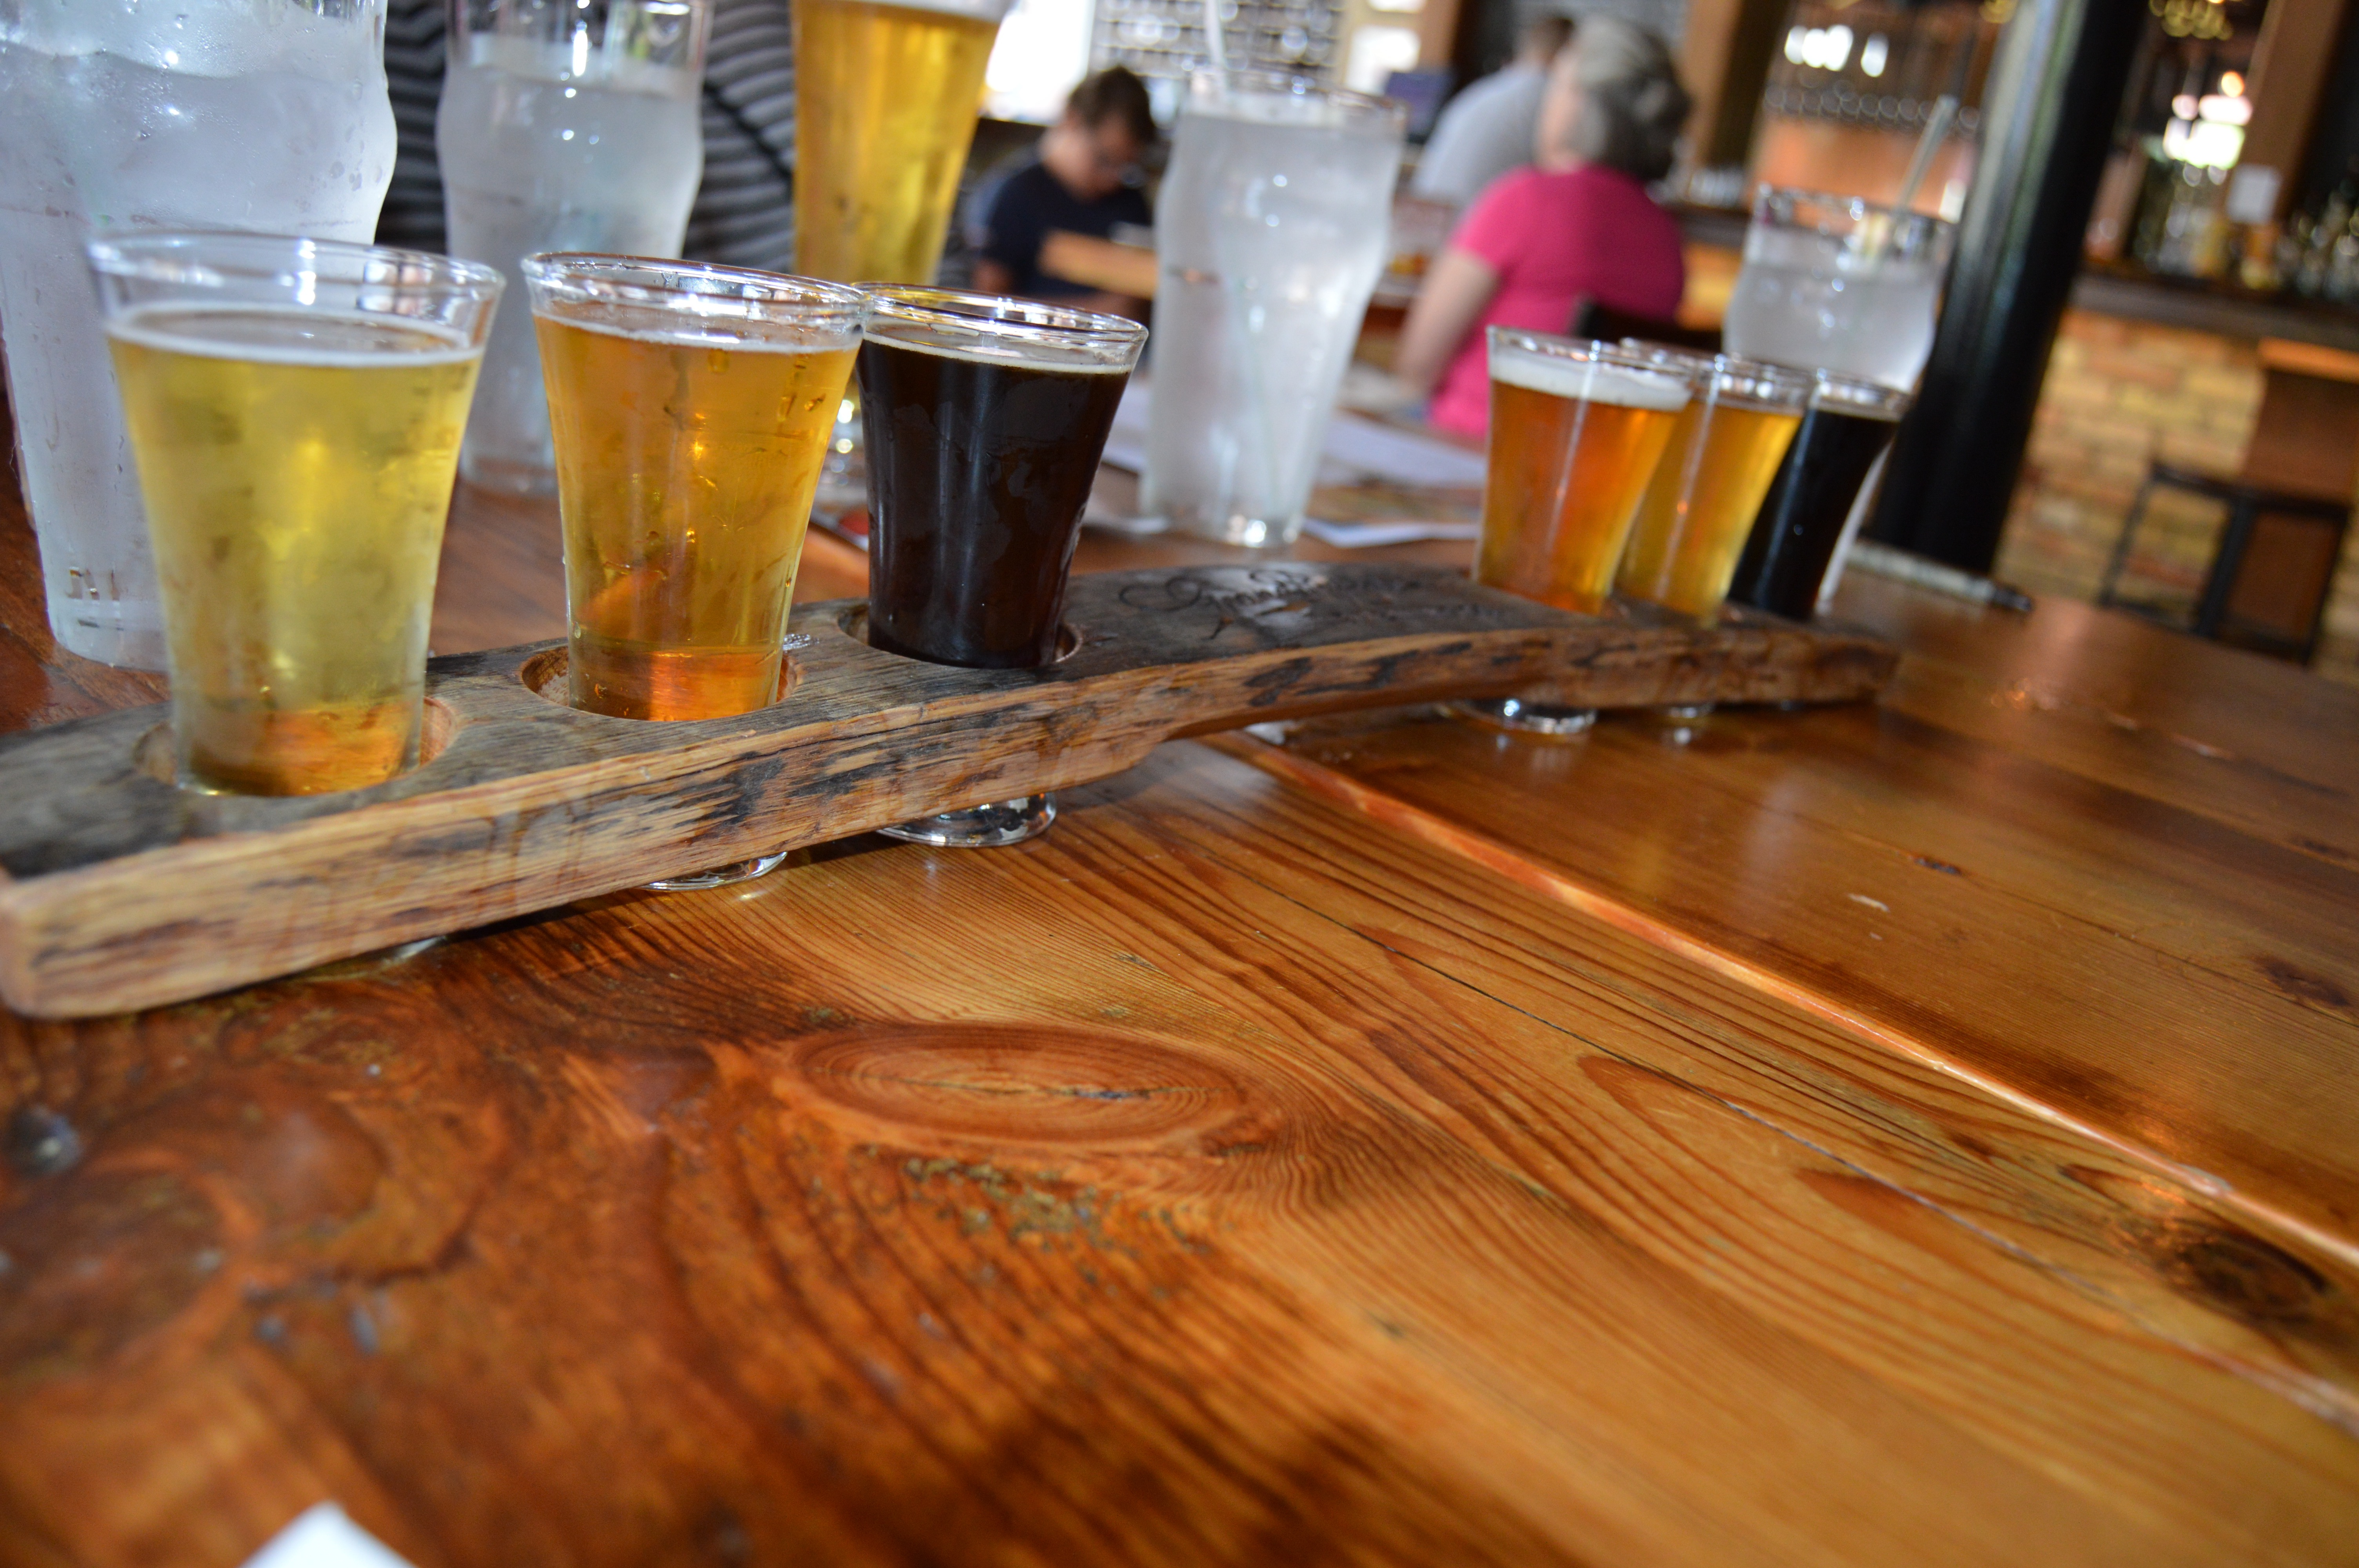 Flight of beer in reclaimed wood holder at Grand Rapids Brewing in Beer City, USA